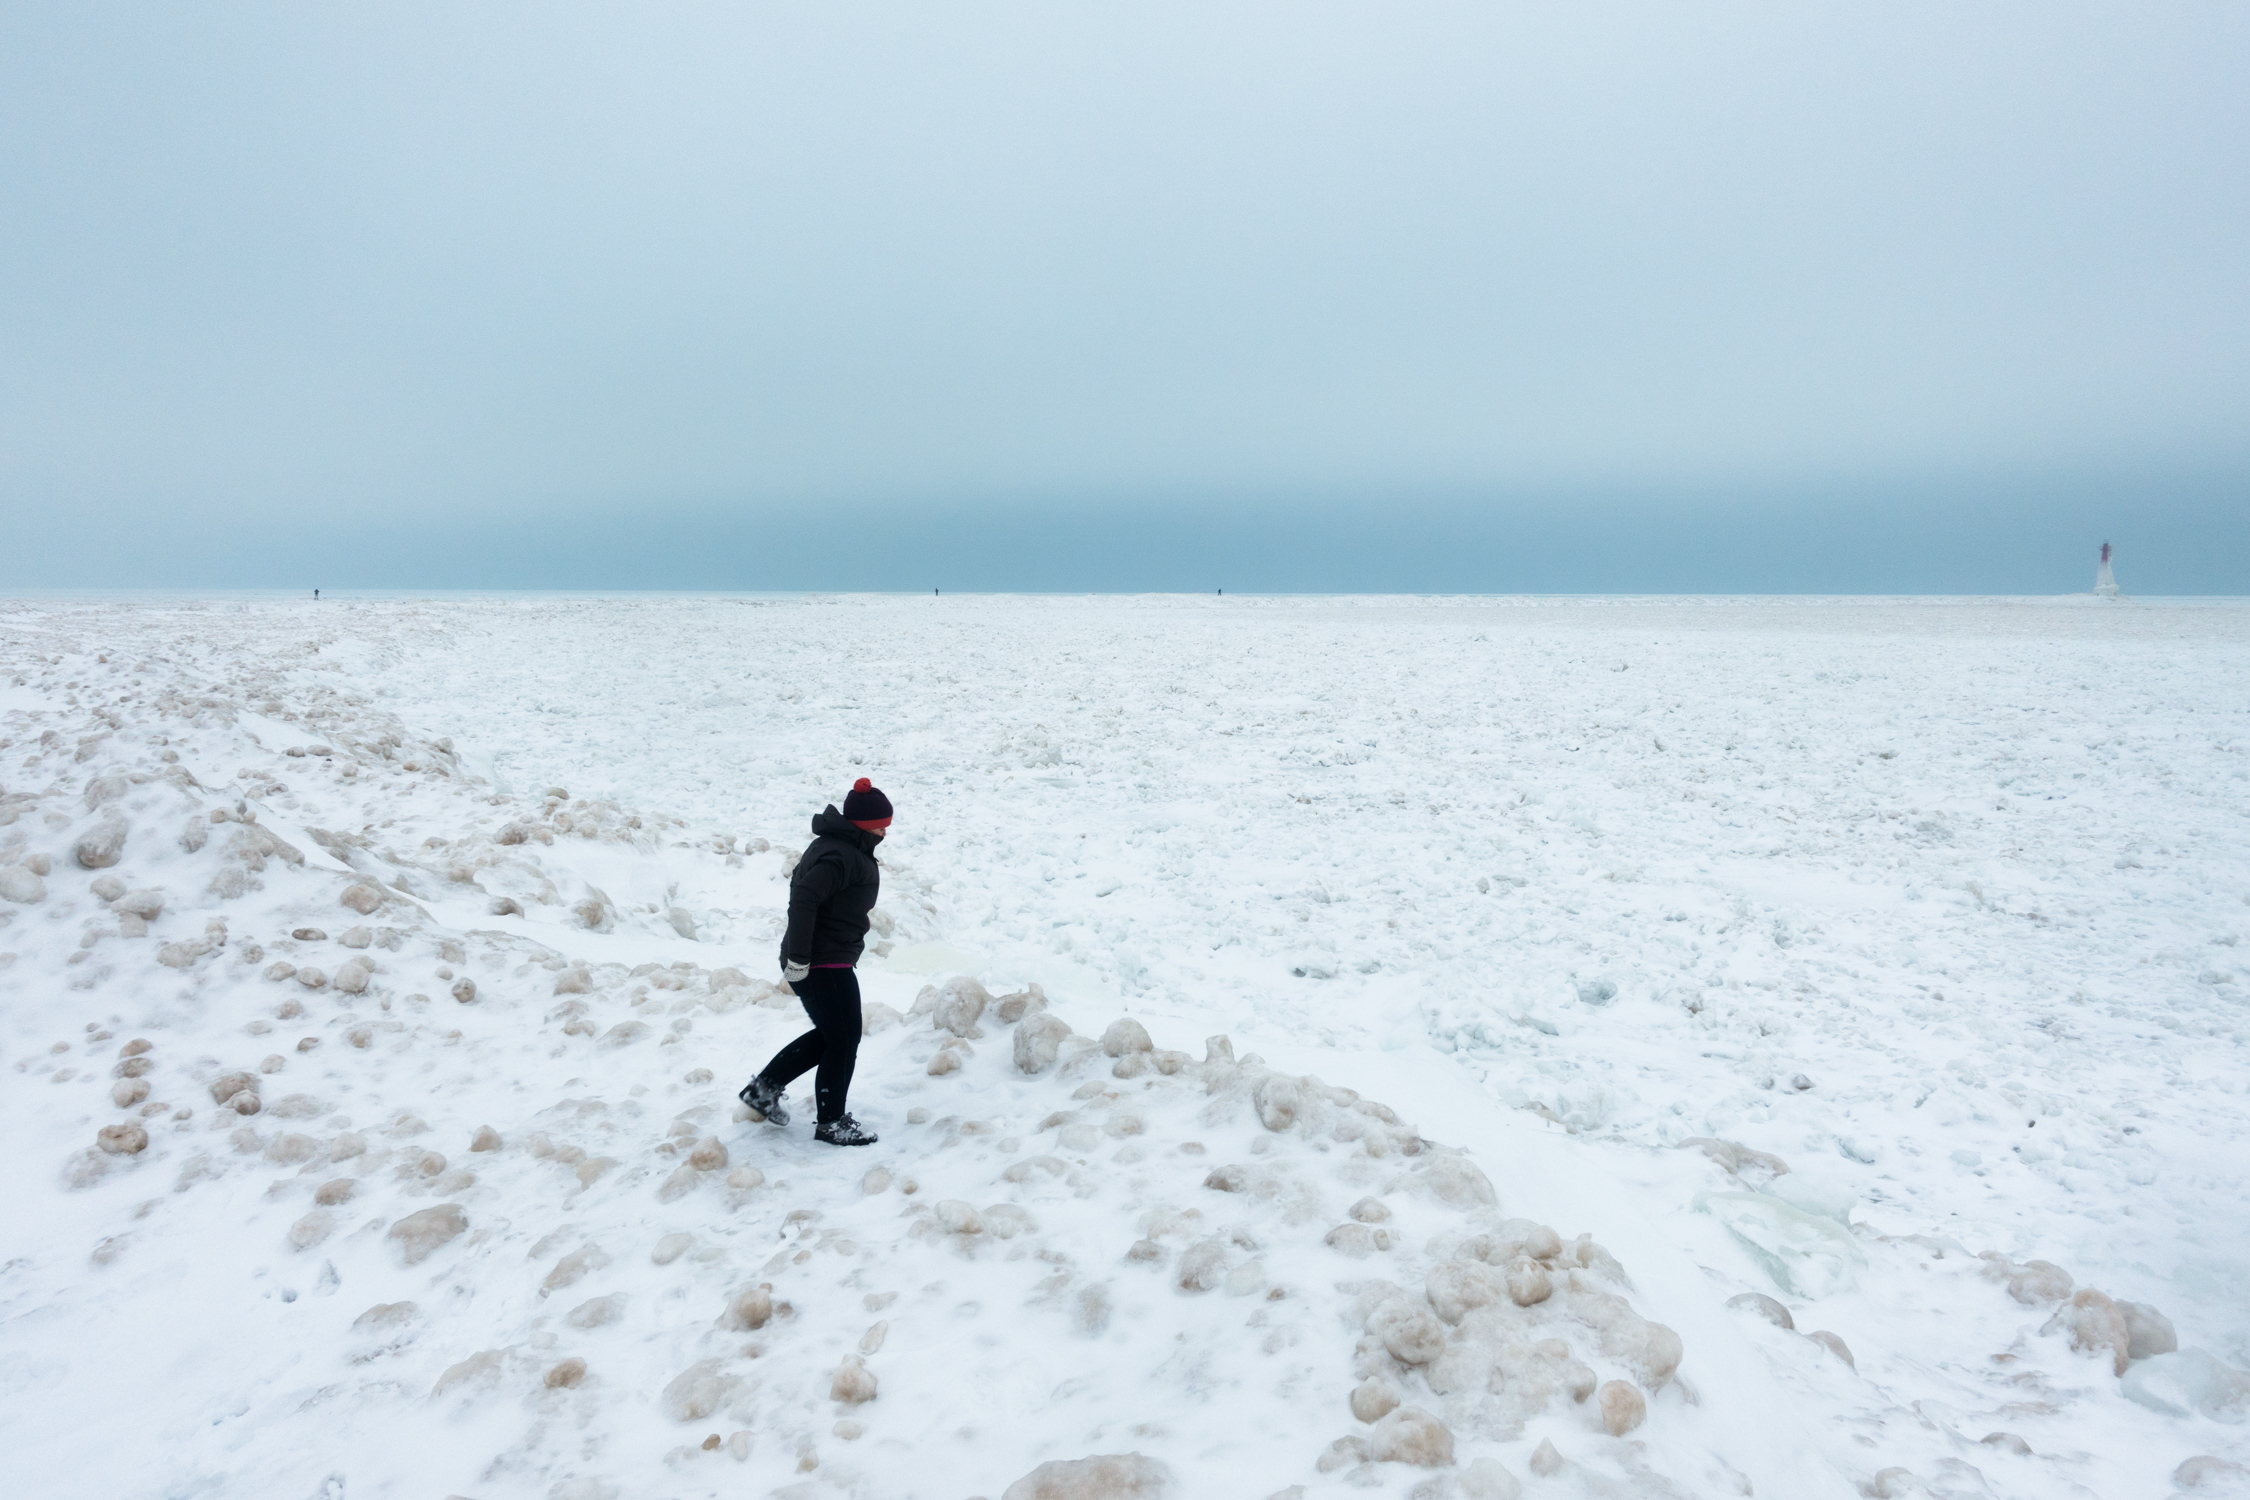 Muskegon, Michigan Winter Getaway: What to See, Do and Eat: a travel guide on what to see, do and eat in Muskegon, Michigan during the winter. #travel #Michigan #winter #travelguide